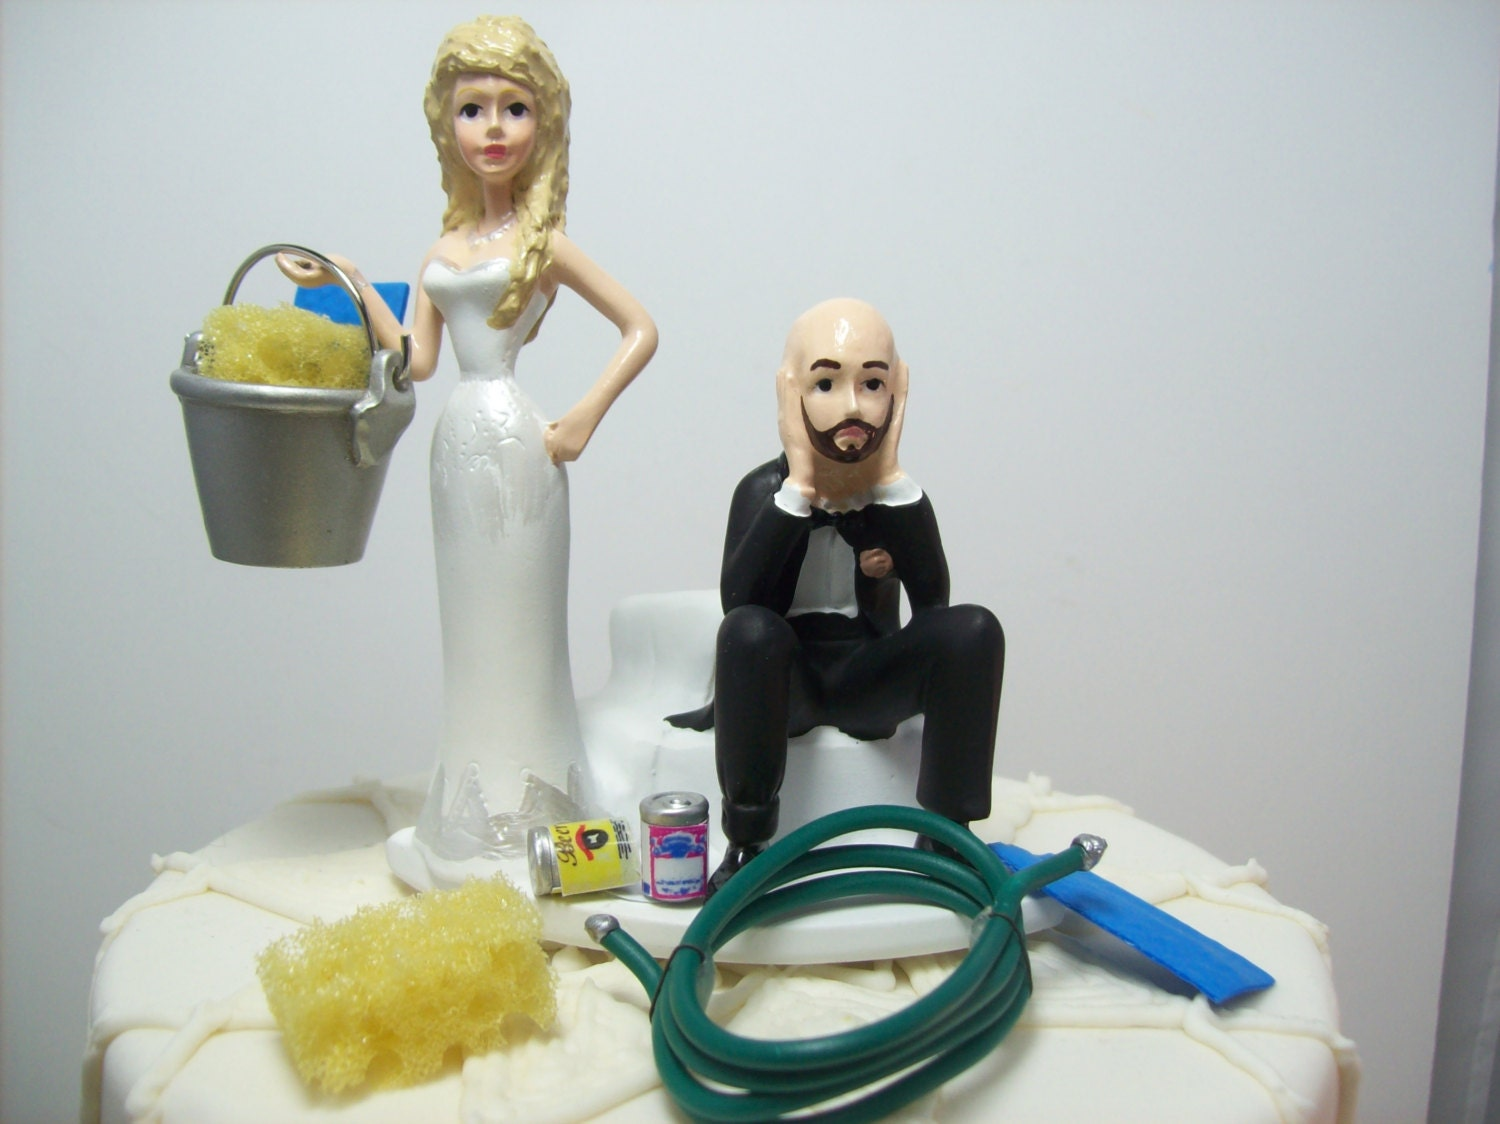 AUTO Car Wash Bride and Groom Wedding Cake Topper Funny Grooms